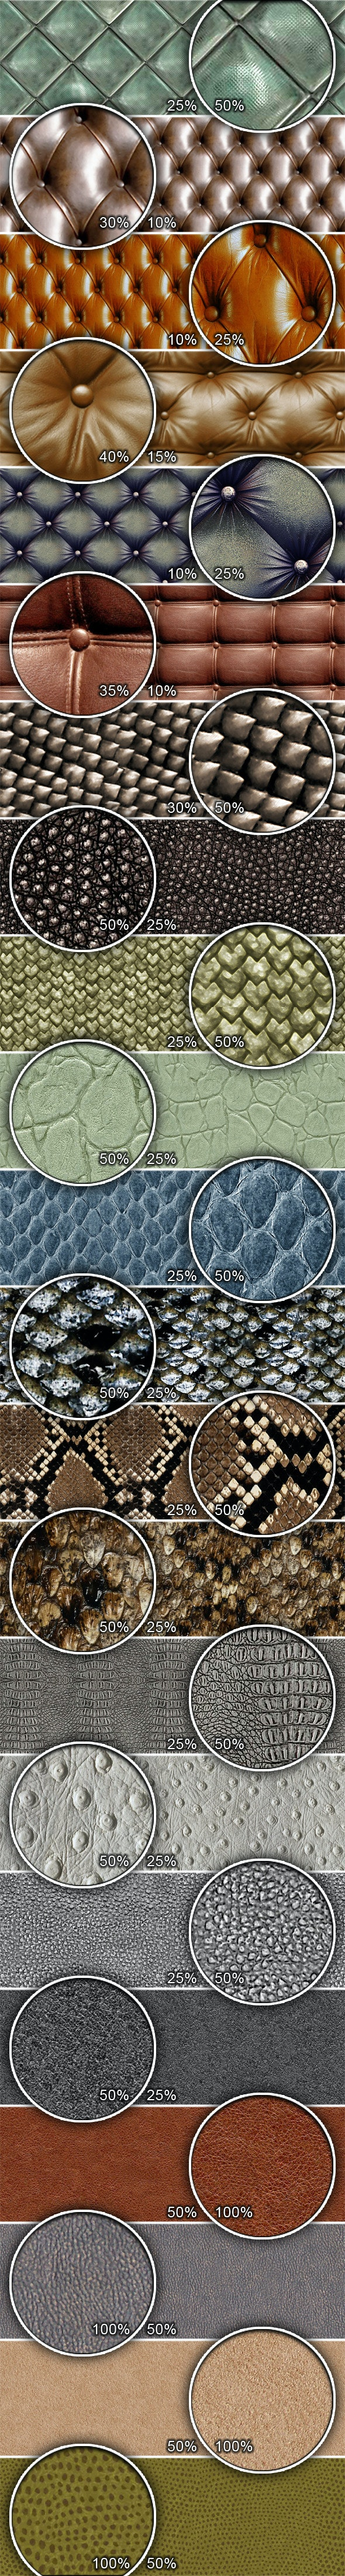 Leather and Skins Tileable Patterns - Textures / Fills / Patterns Photoshop